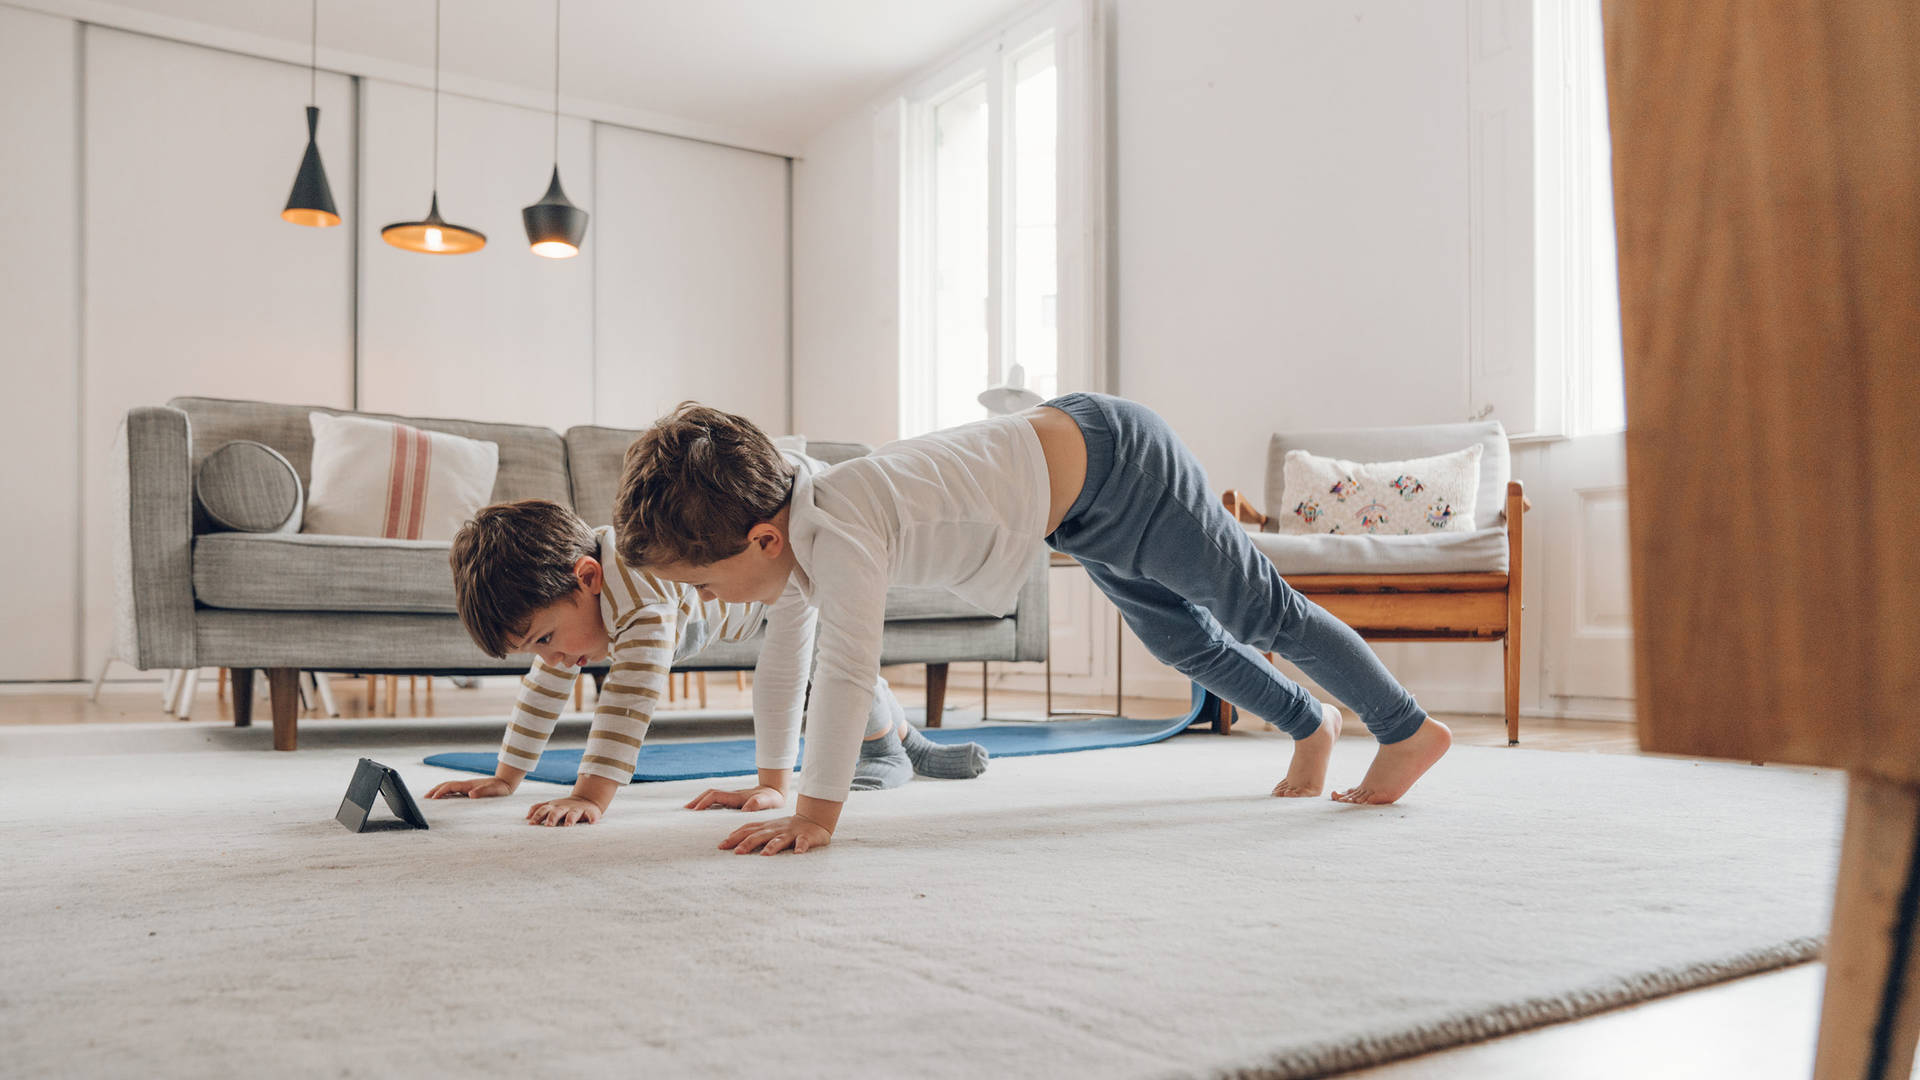 Two children learning yoga poses